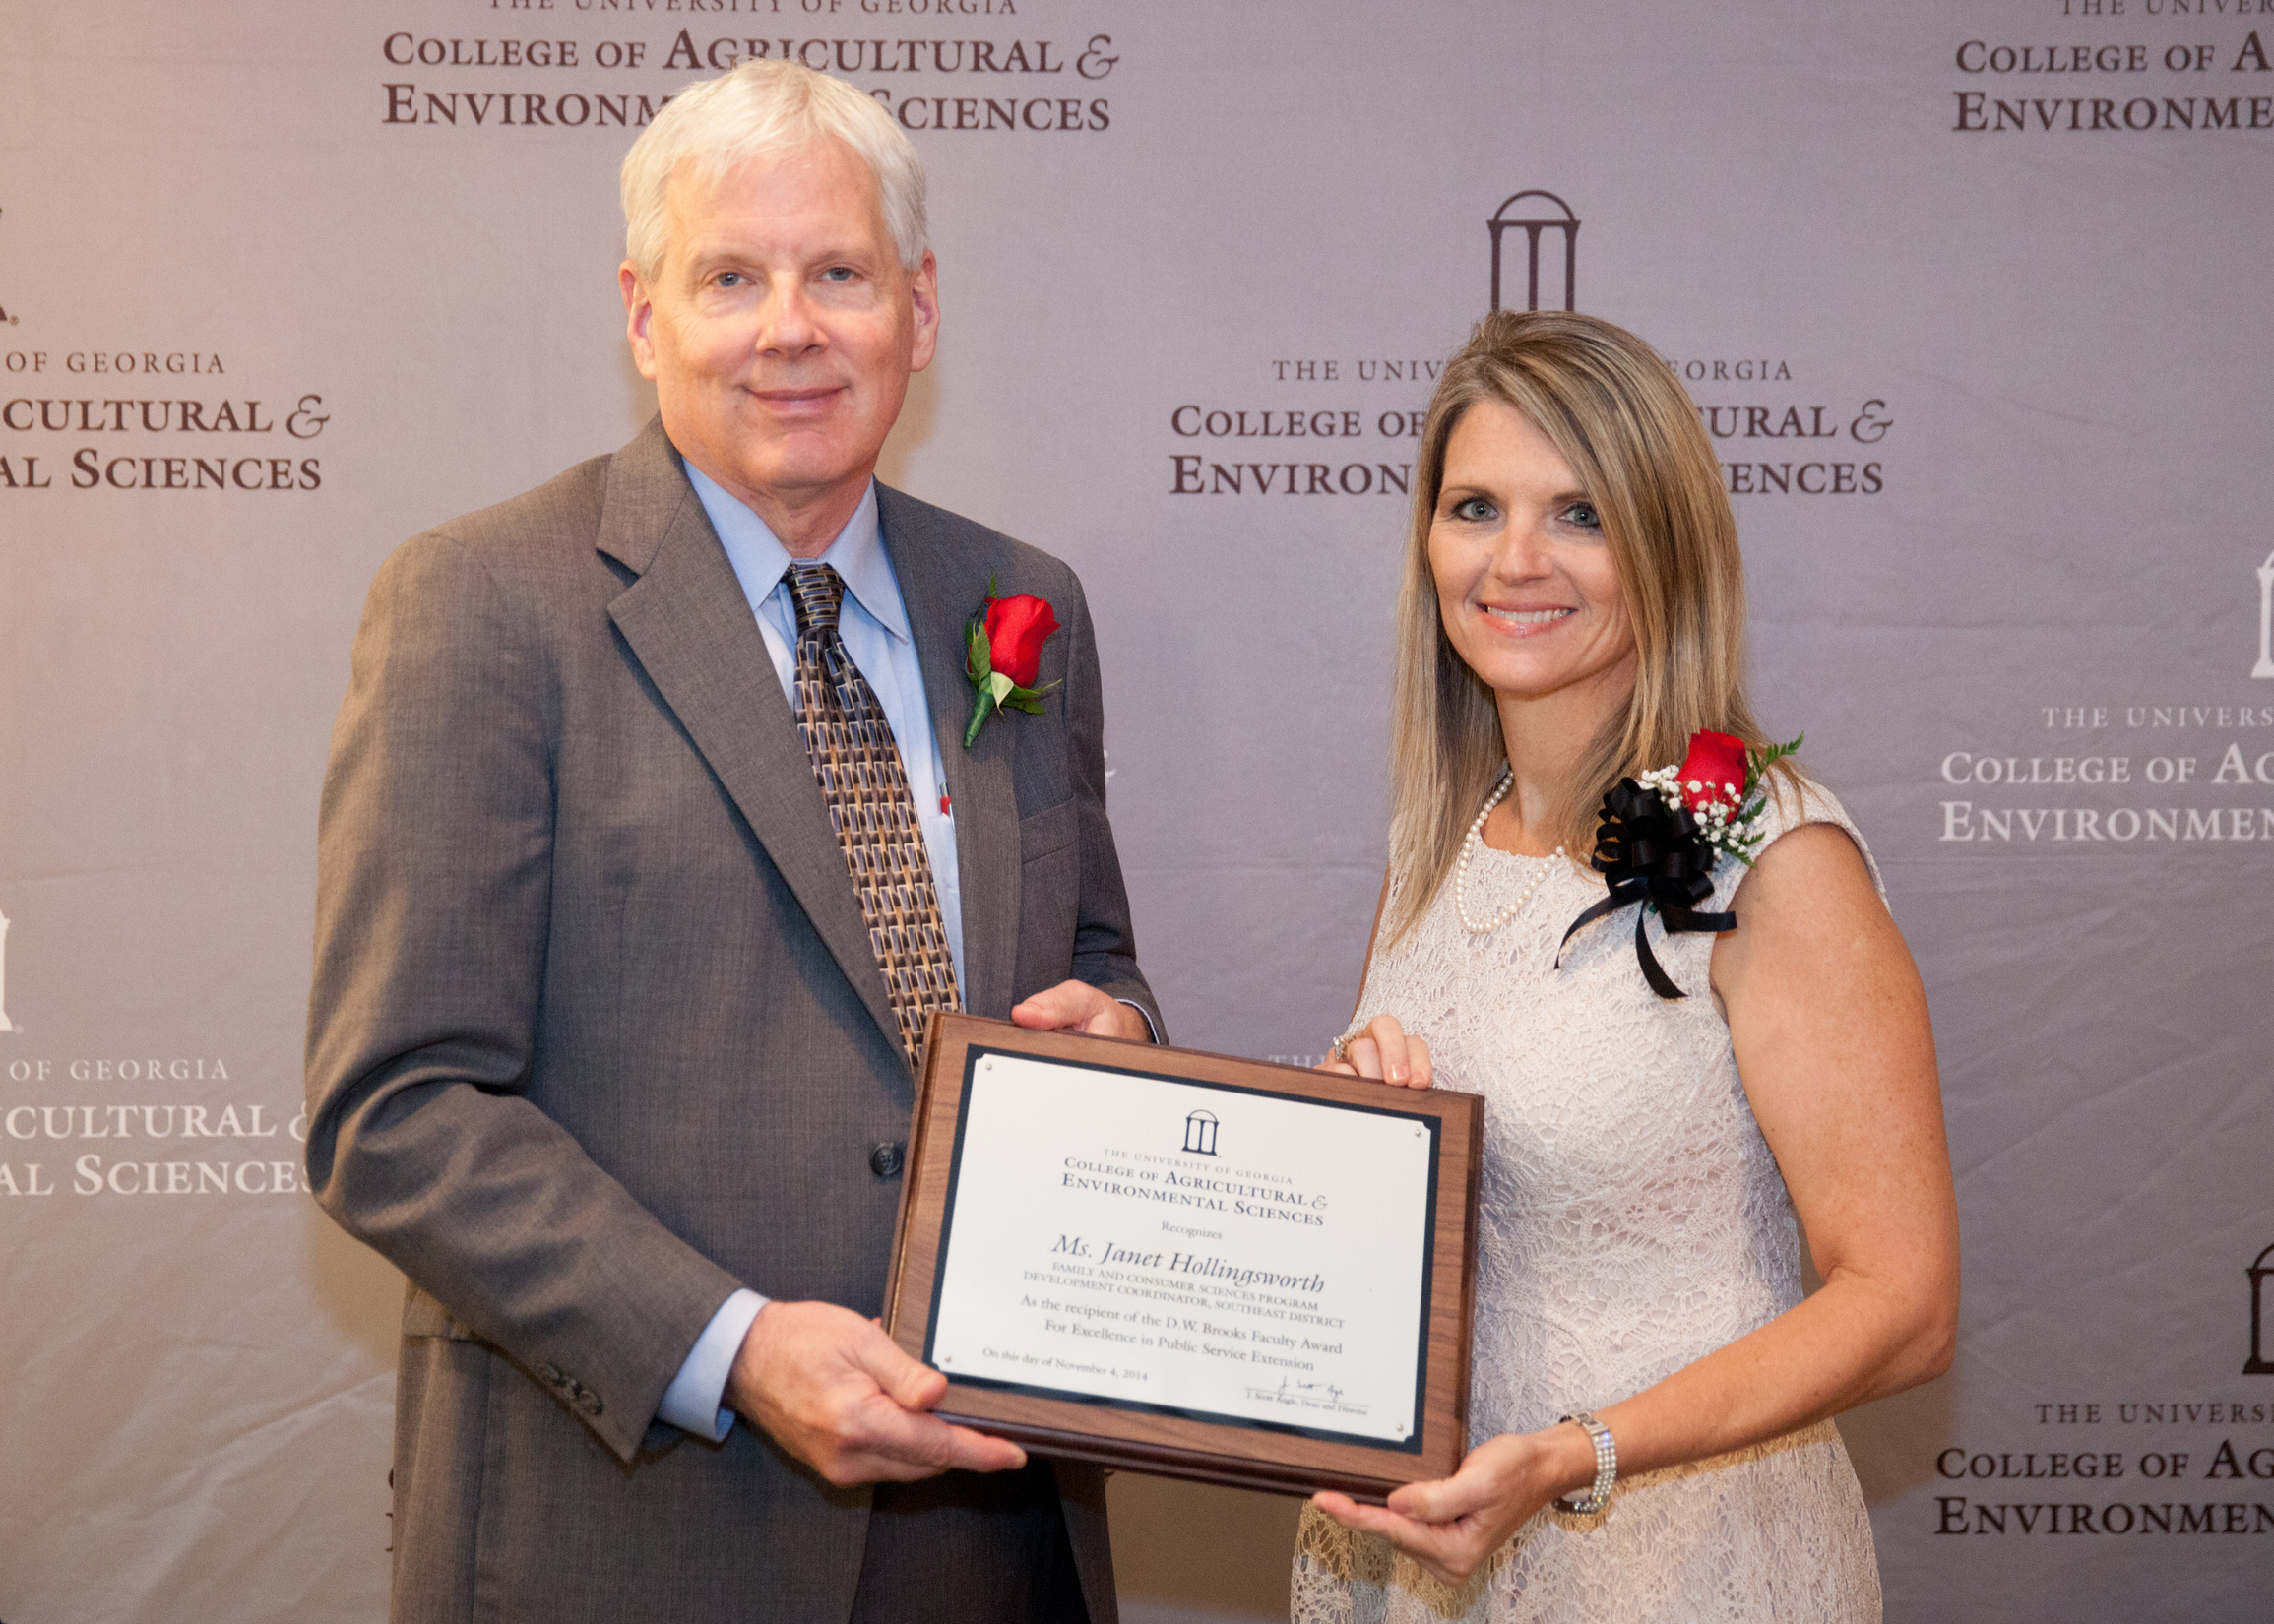 Dean J. Scott Angle presents Janet Hollingsworth, Family and Consumer Sciences program development coordinator for southeastern Georgia, with the D.W. Brooks Faculty Award for Excellence in Public Service Extension. The award recognizes her work developing successful public health, nutrition and safety programing in Appling and Wayne counties.